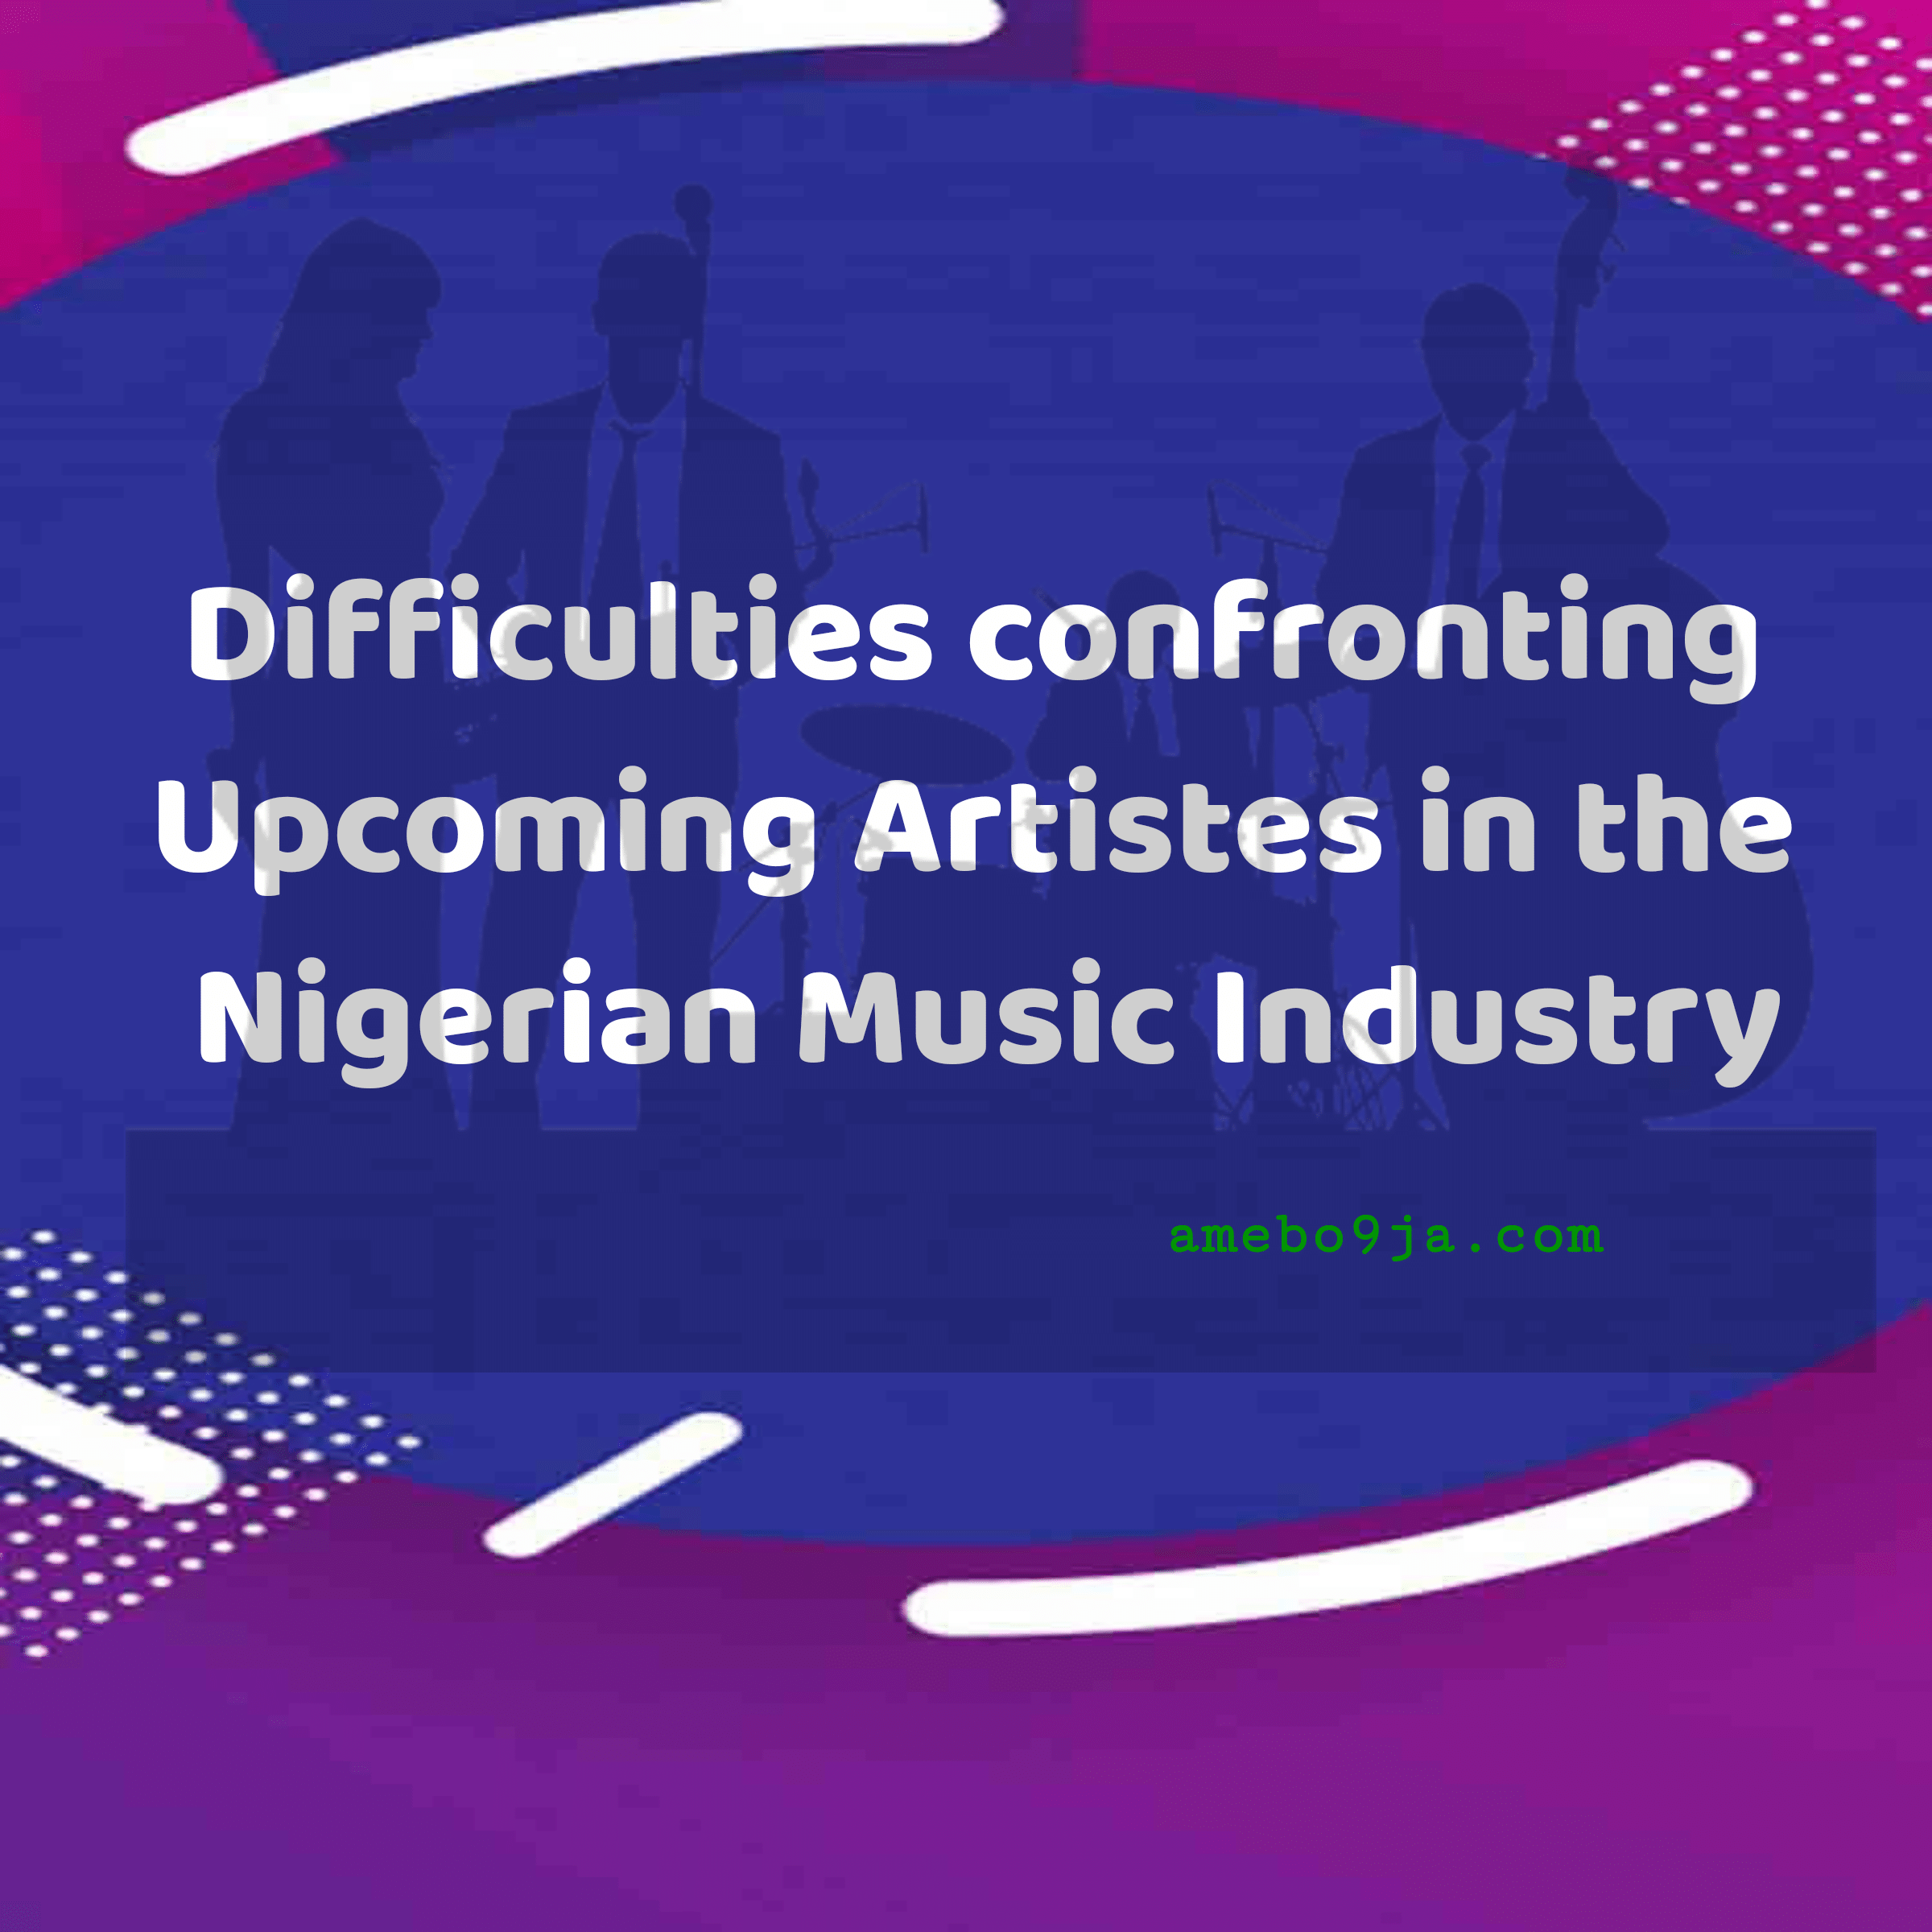 Difficulties confronting Upcoming Artistes in the Nigerian Music Industry